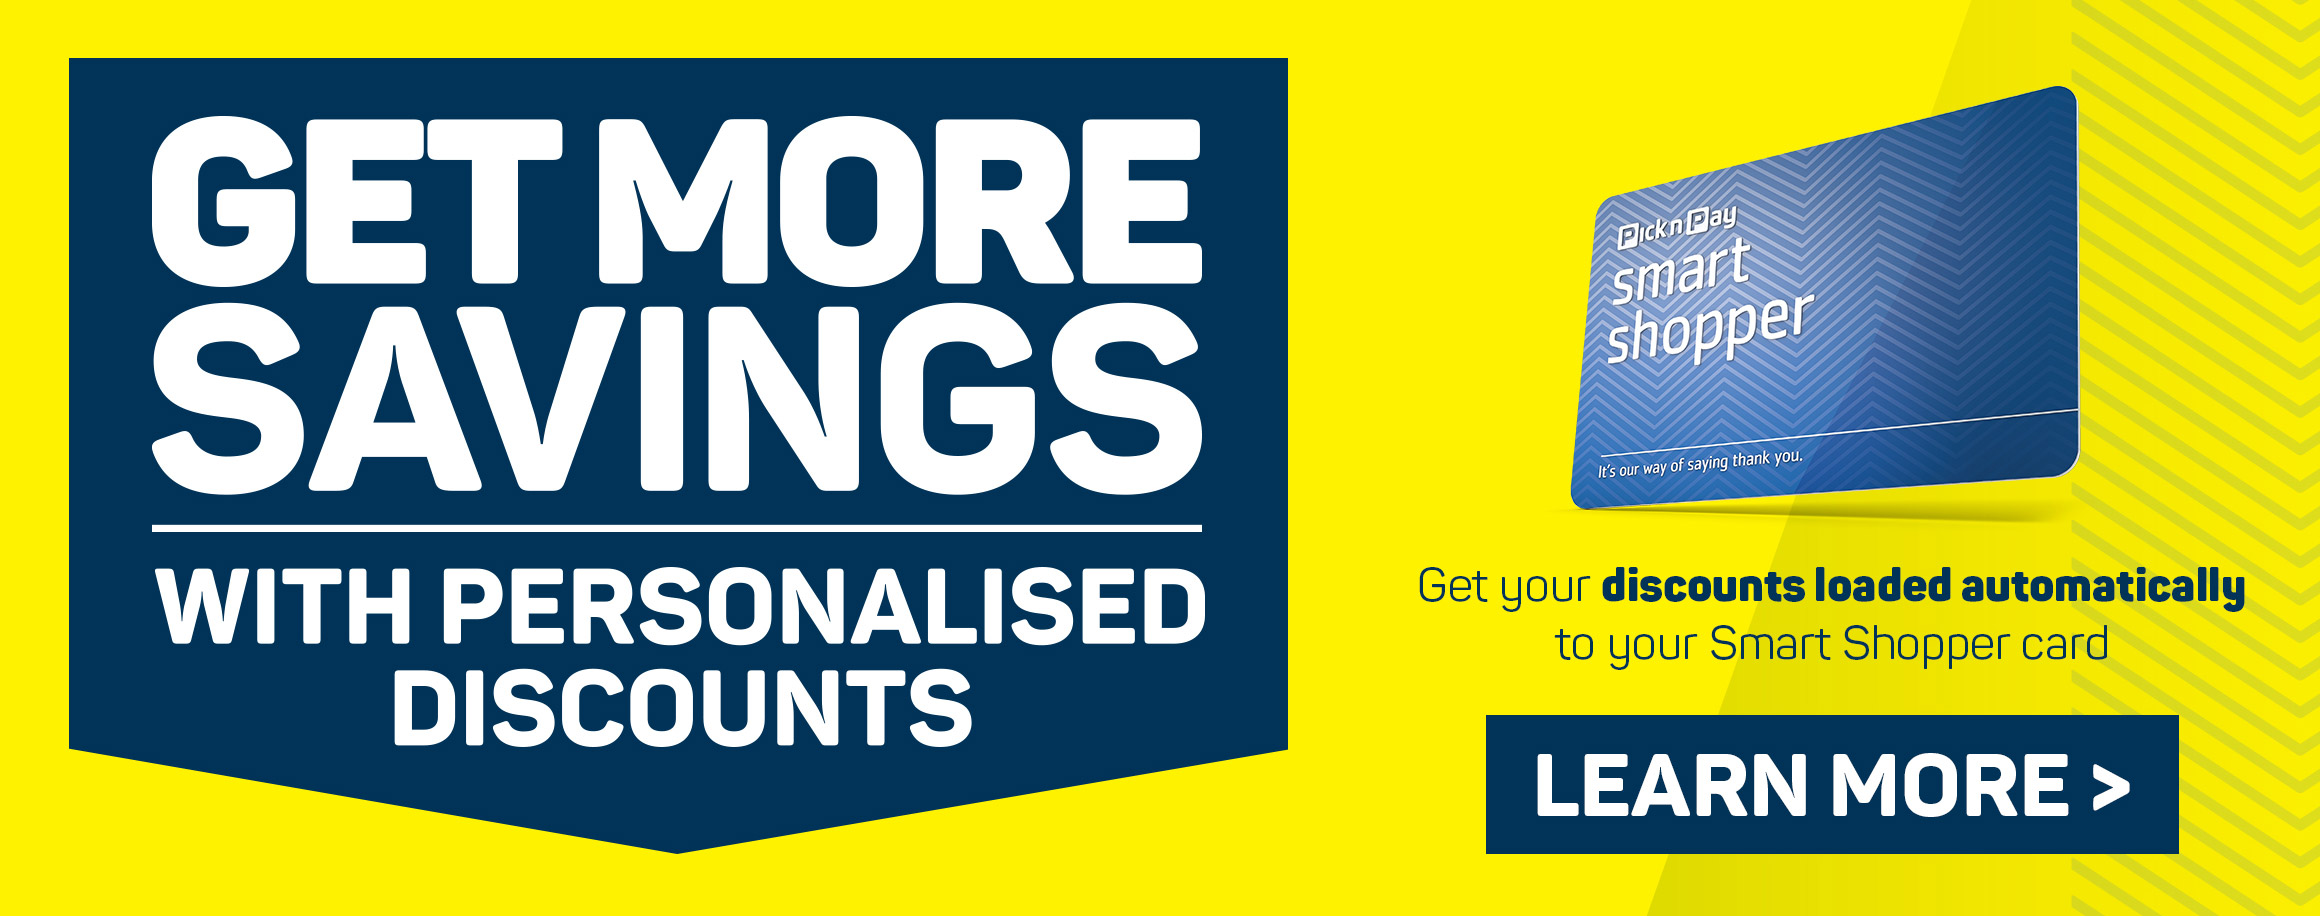 Get more savings with personalised discounts. Learn more